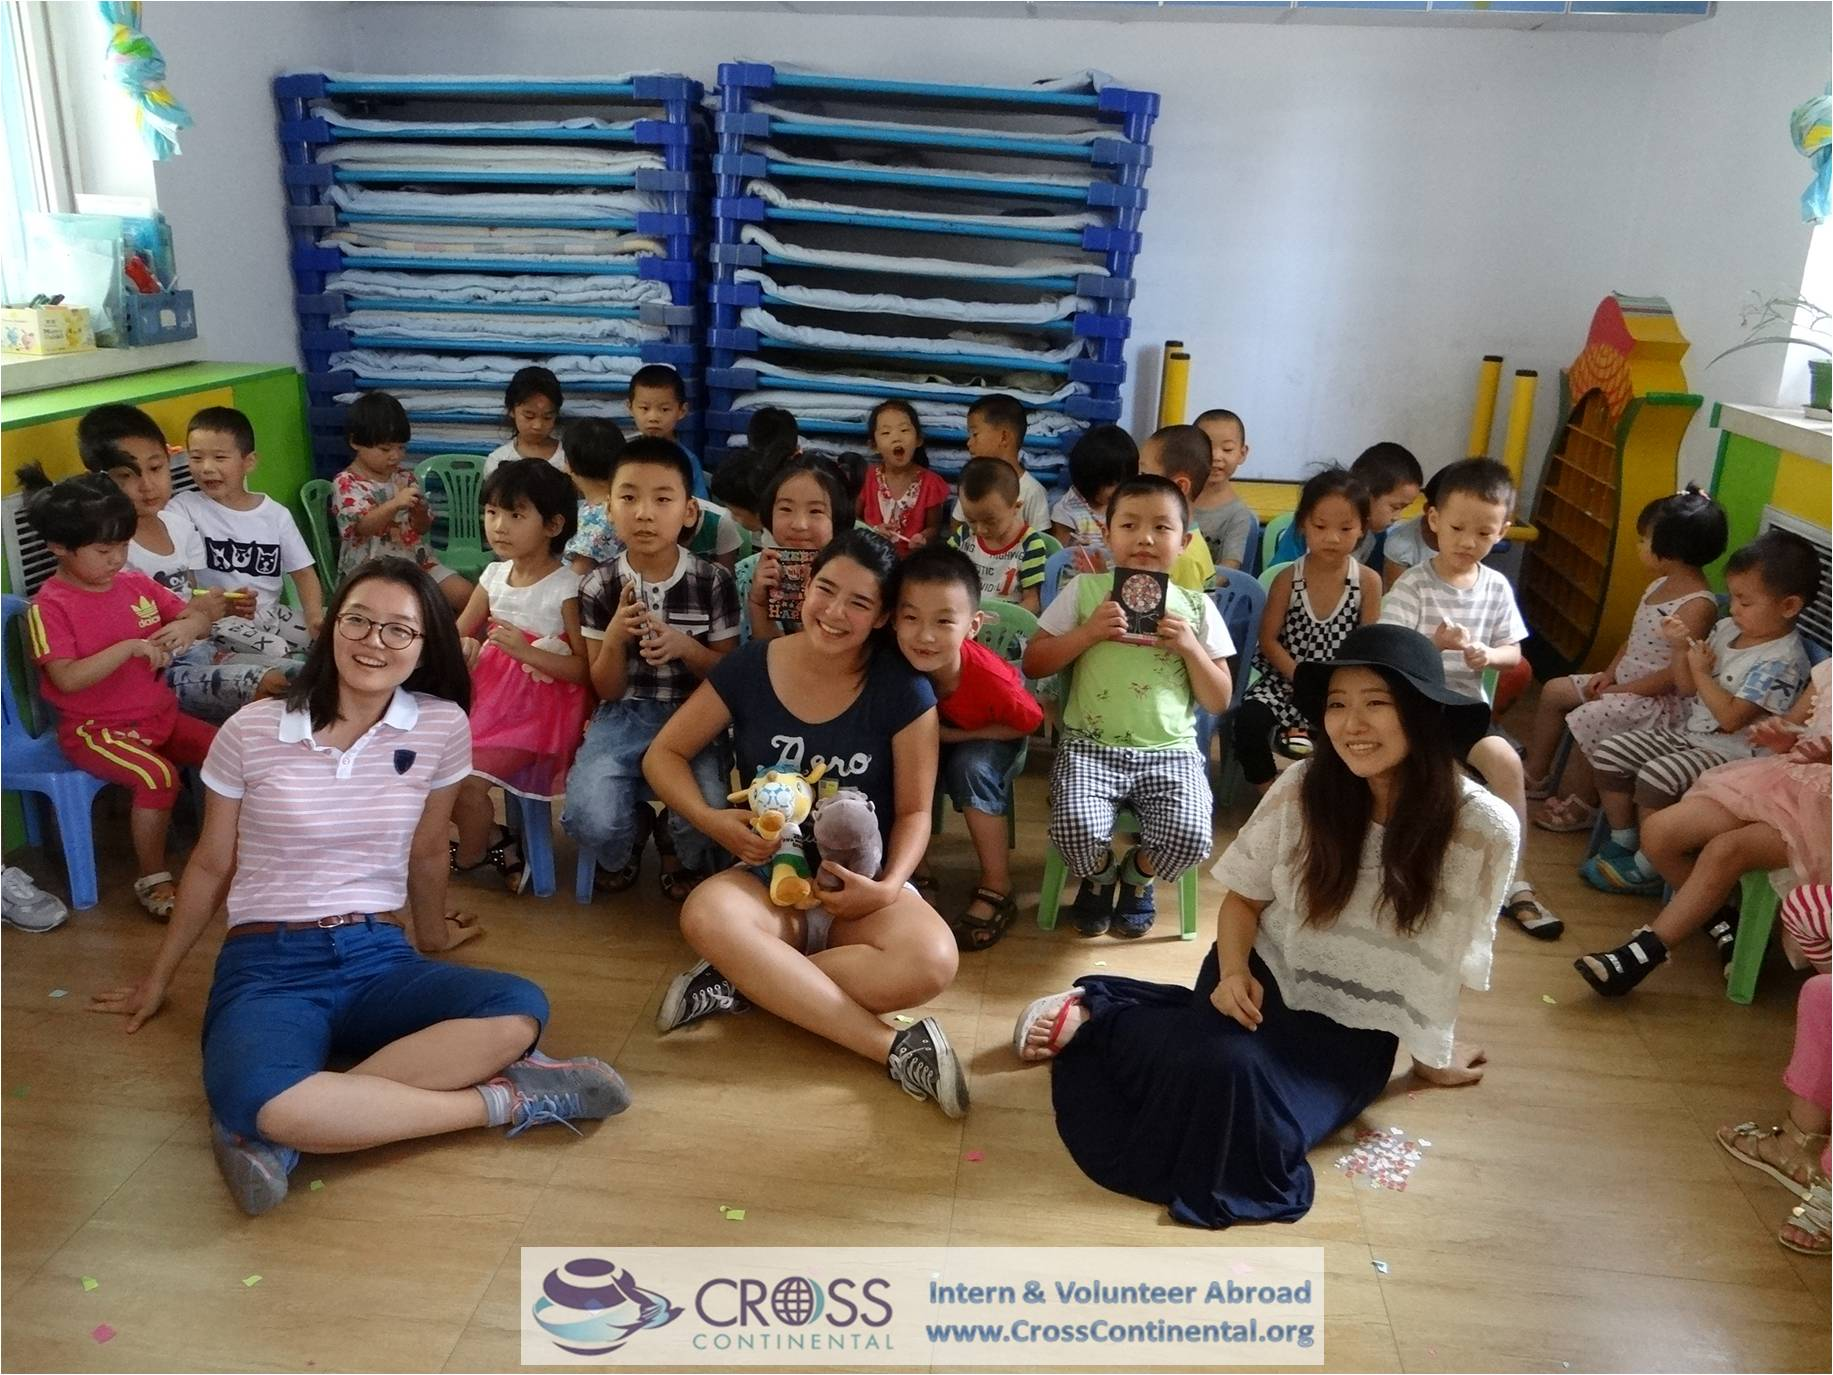 Youth Volunteer Group - Intern or Volunteer Abroad with ...